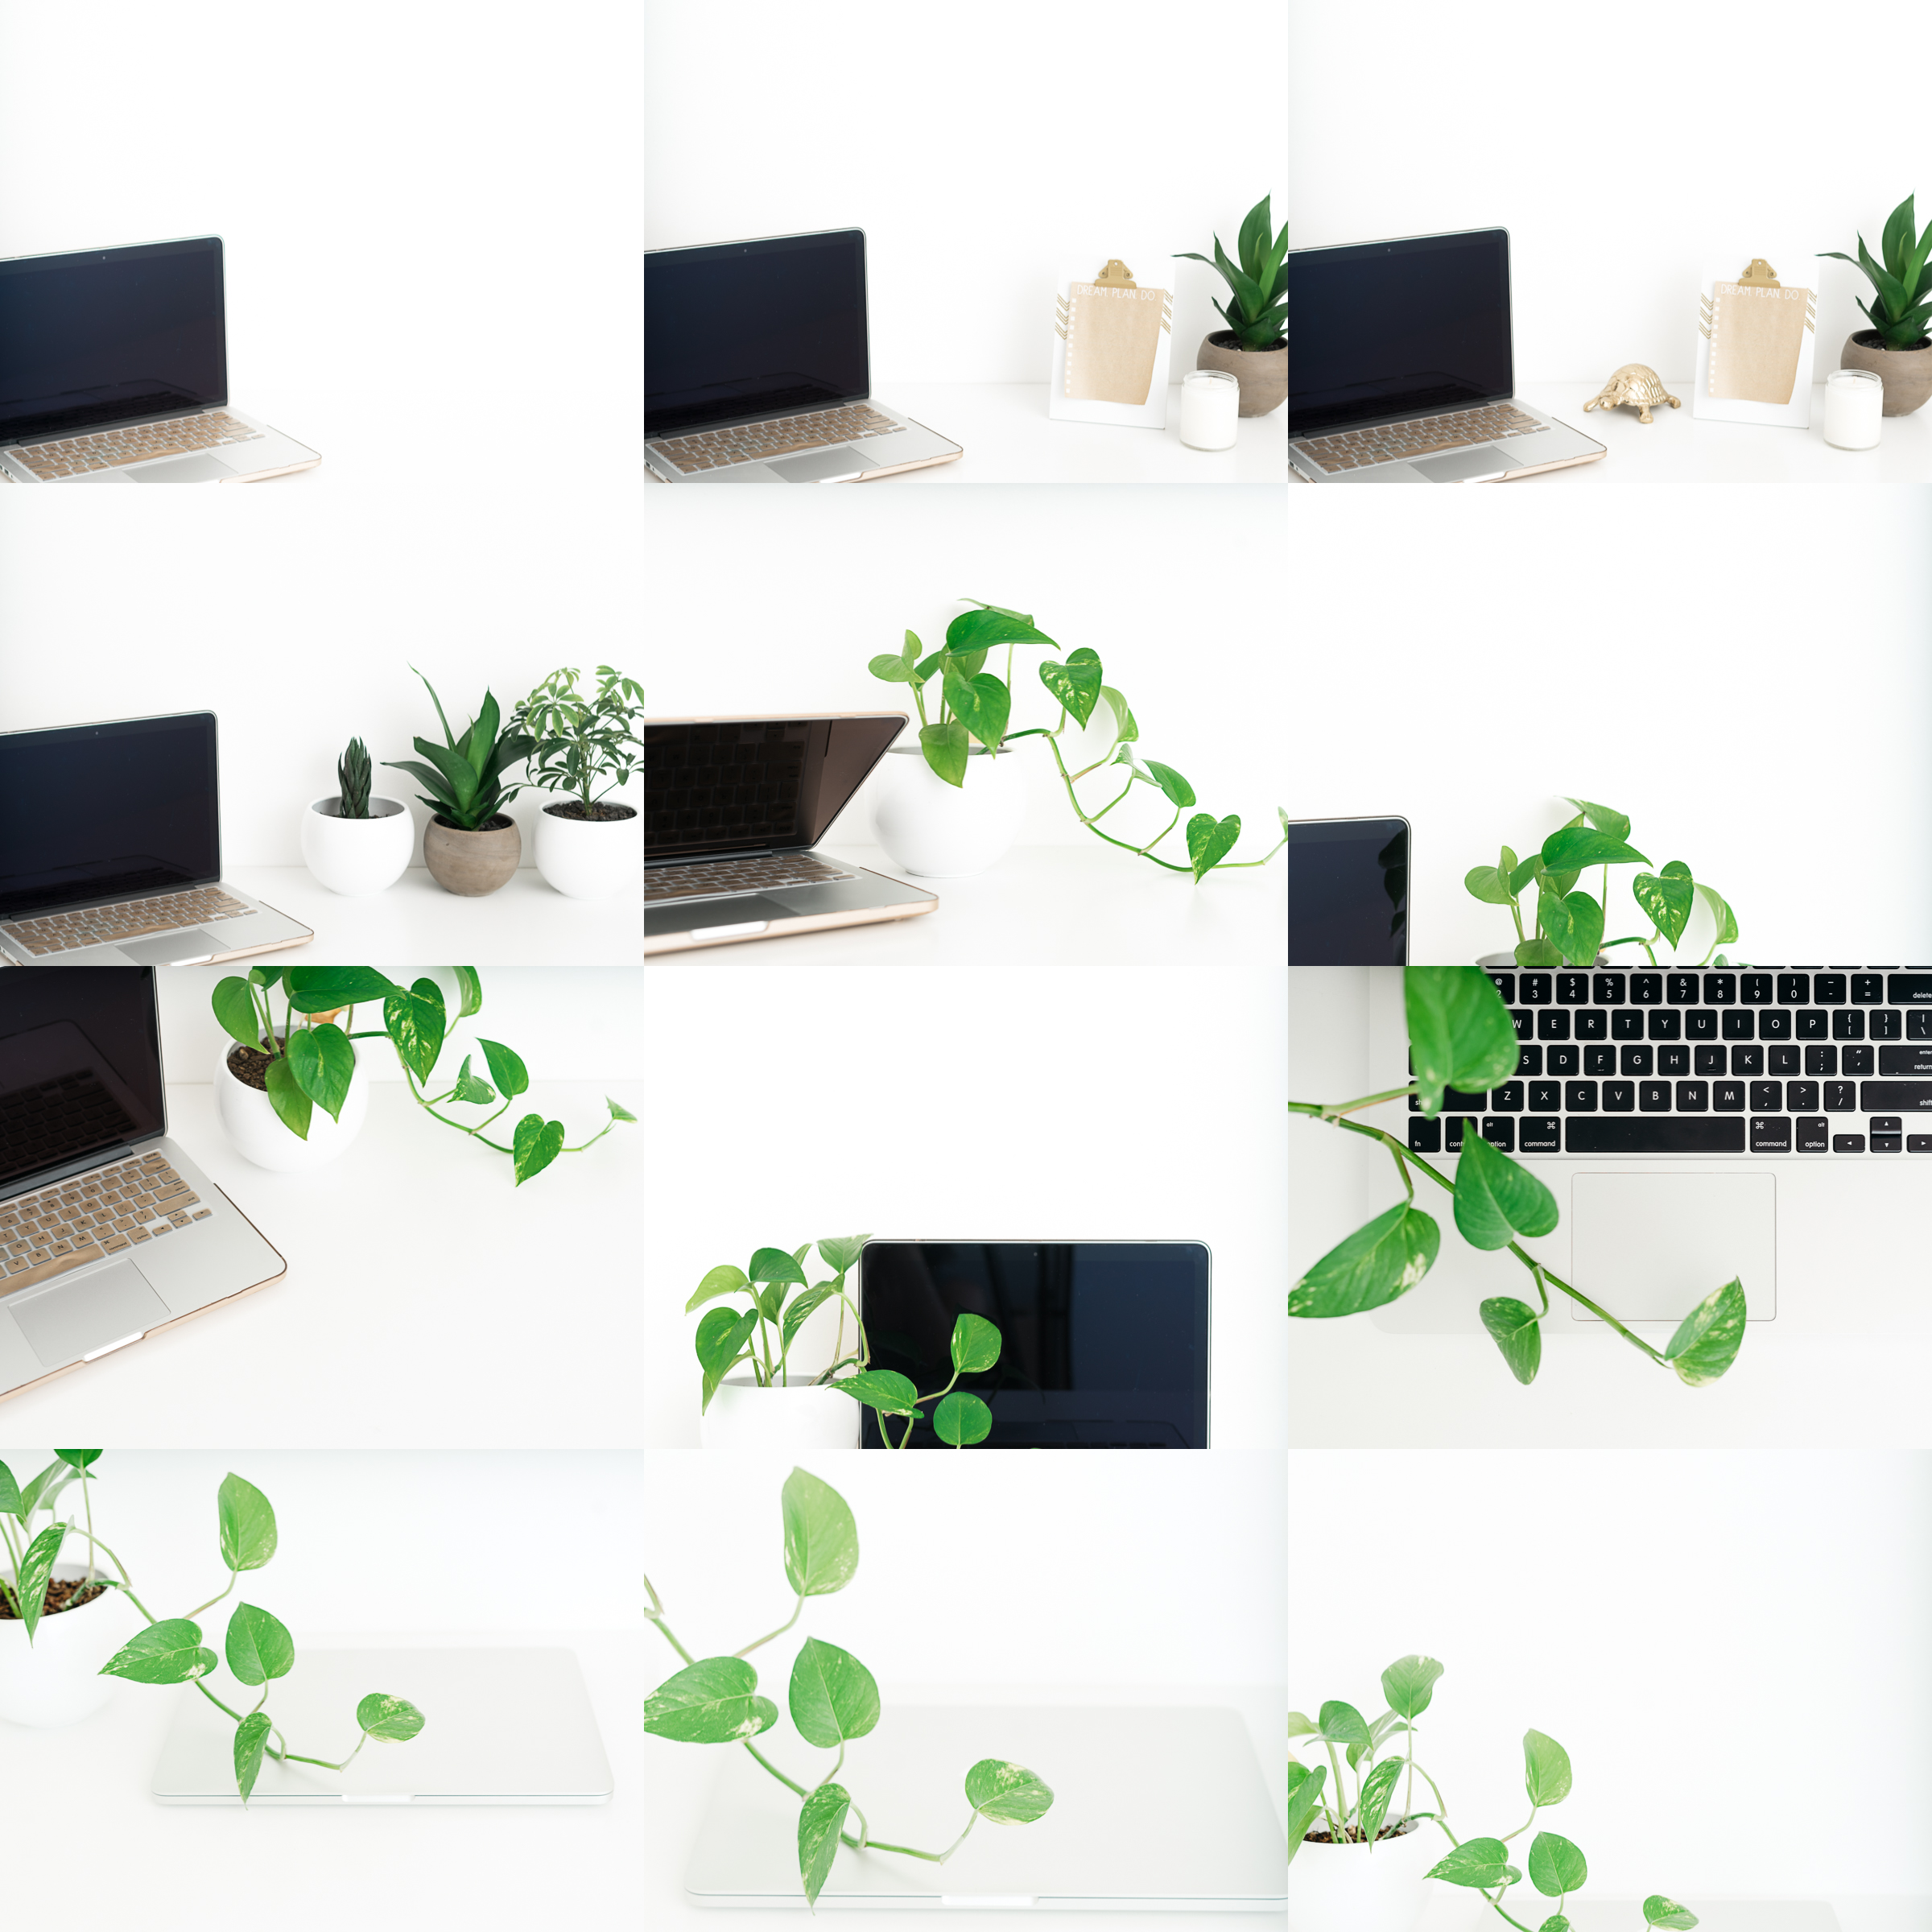 Laptop & Leaves - Created for brands that work from their laptop and love having plant life around their workspace.